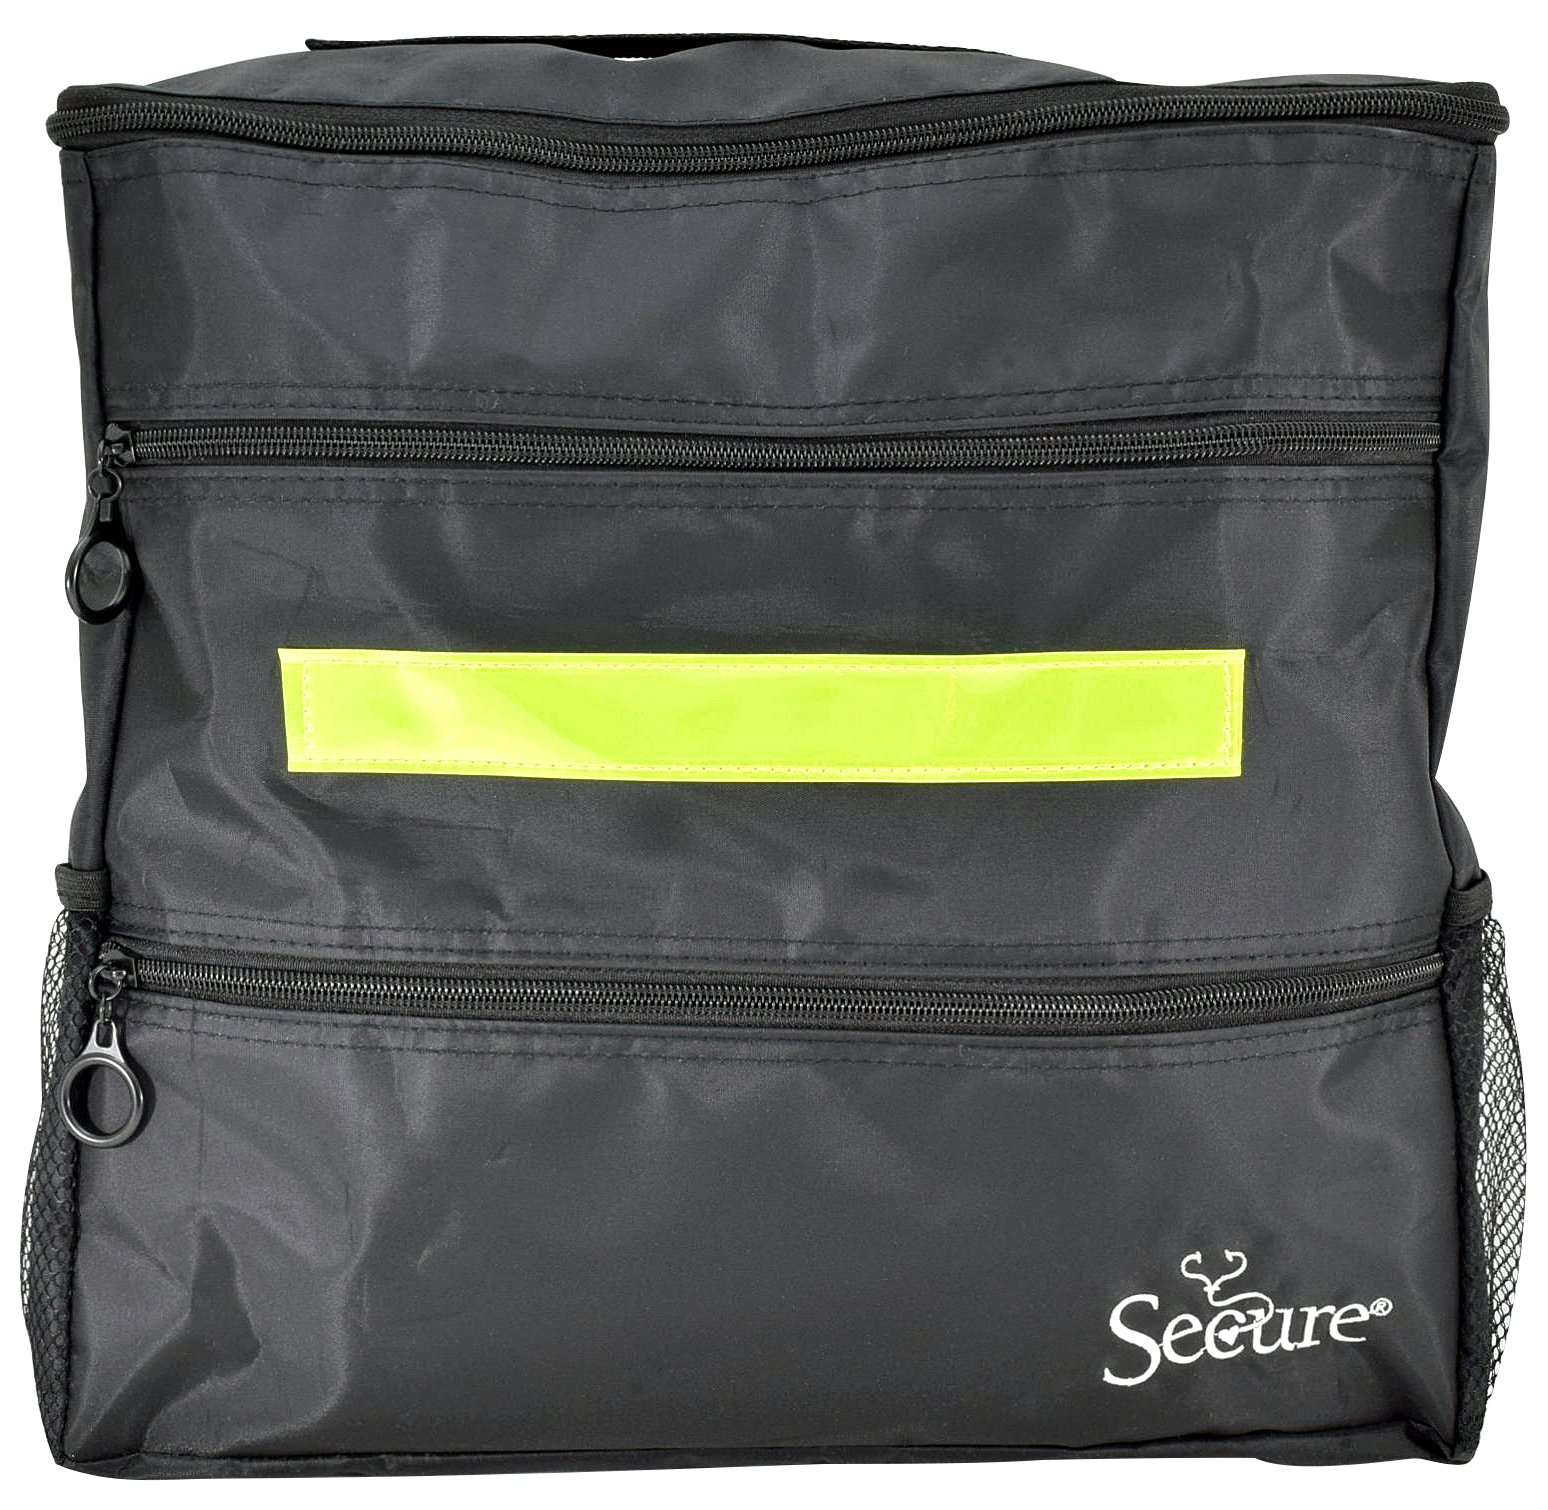 Secure WBP-1B Wheelchair Storage Backpack Bag with Multiple Pockets and Nighttime Safety Reflector, Black (13'' x 12.5''x 3'')